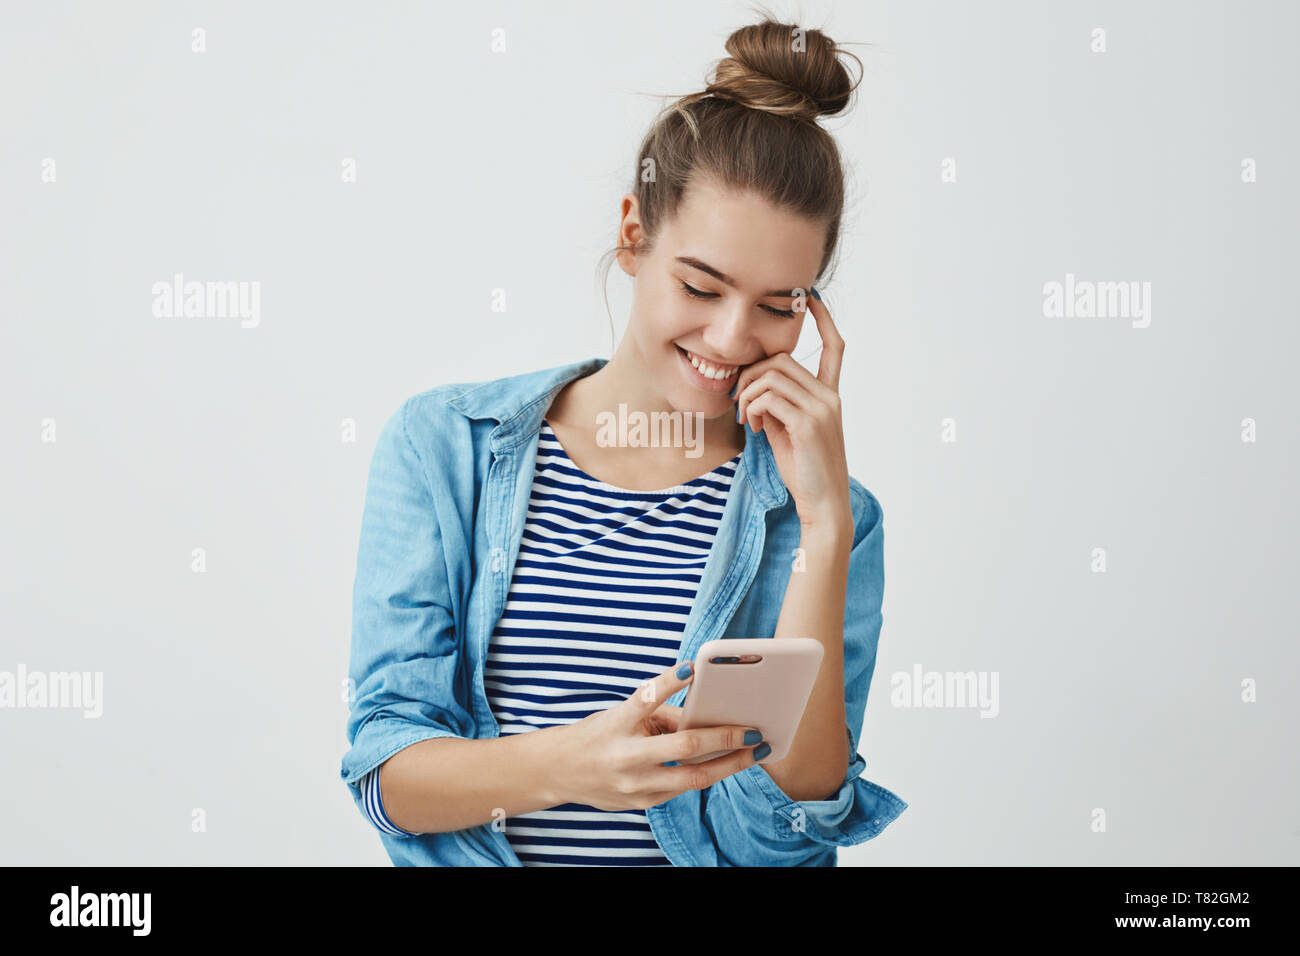 Carefree attractive young european romantic girlfriend 25s, standing cozy clothes hairbun reading touching funny message smiling laughing happily - Stock Image